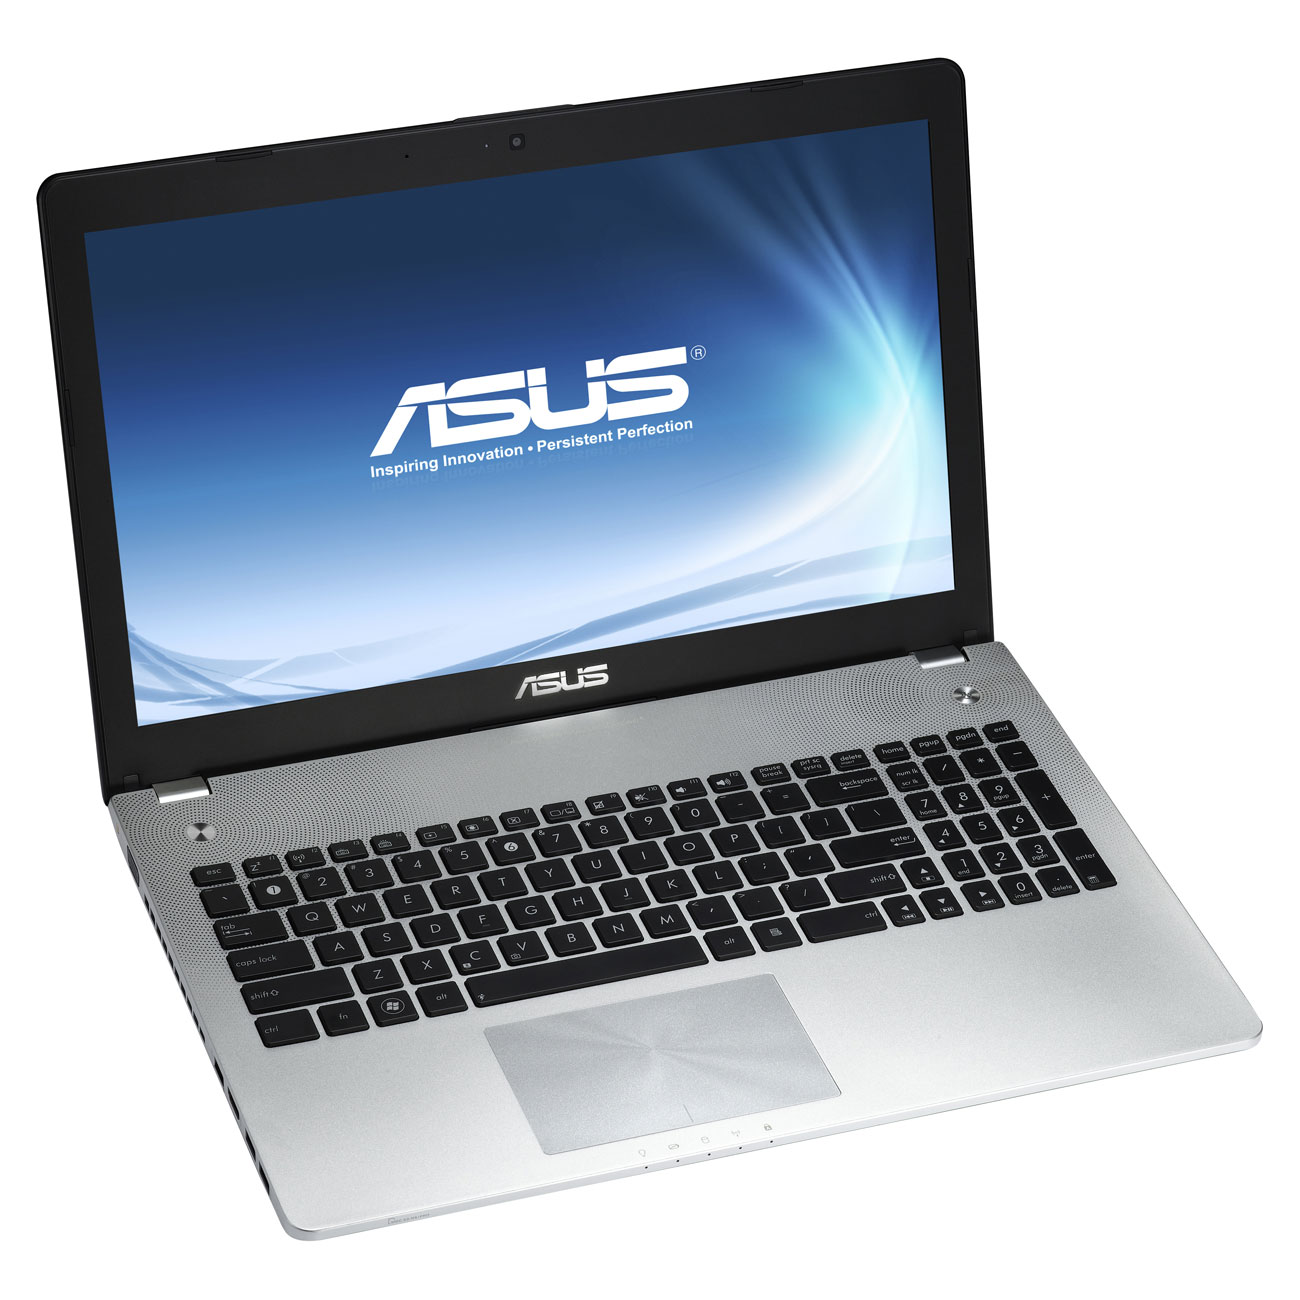 "PC portable ASUS N56JR-CN197H Intel Core i5-4200M 6 Go 750 Go 15.6"" LED NVIDIA GeForce GTX 760M Graveur DVD Wi-Fi N/Bluetooth Webcam Windows 8 64 bits (garantie constructeur 1 an)"